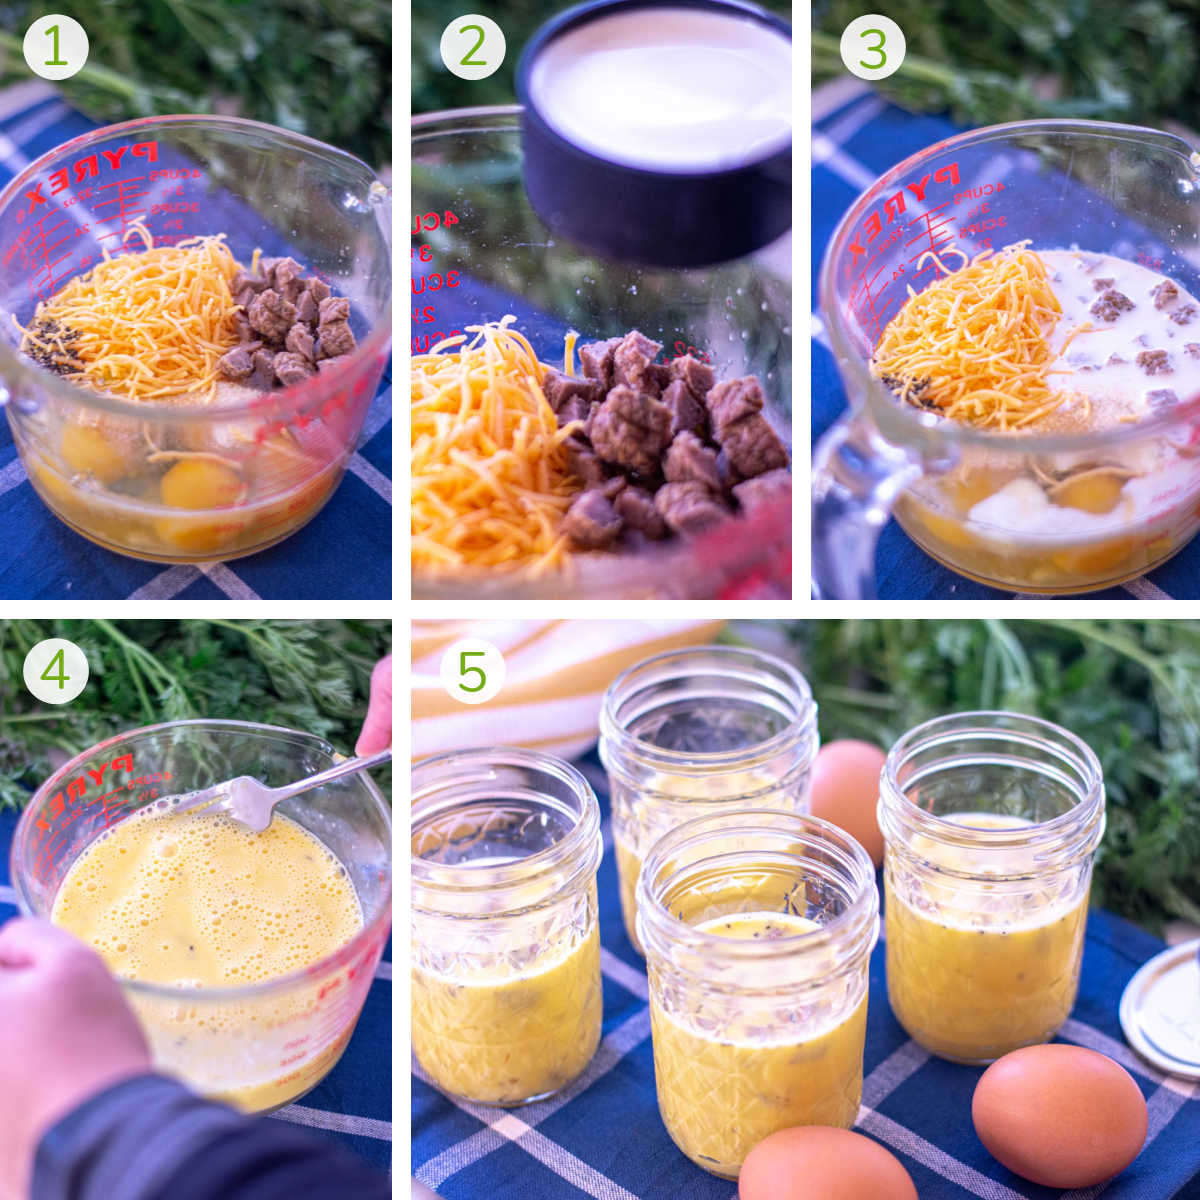 several process shots showing mixing eggs, cheese, sausage, milk, and seasonings to jars and then microwave.